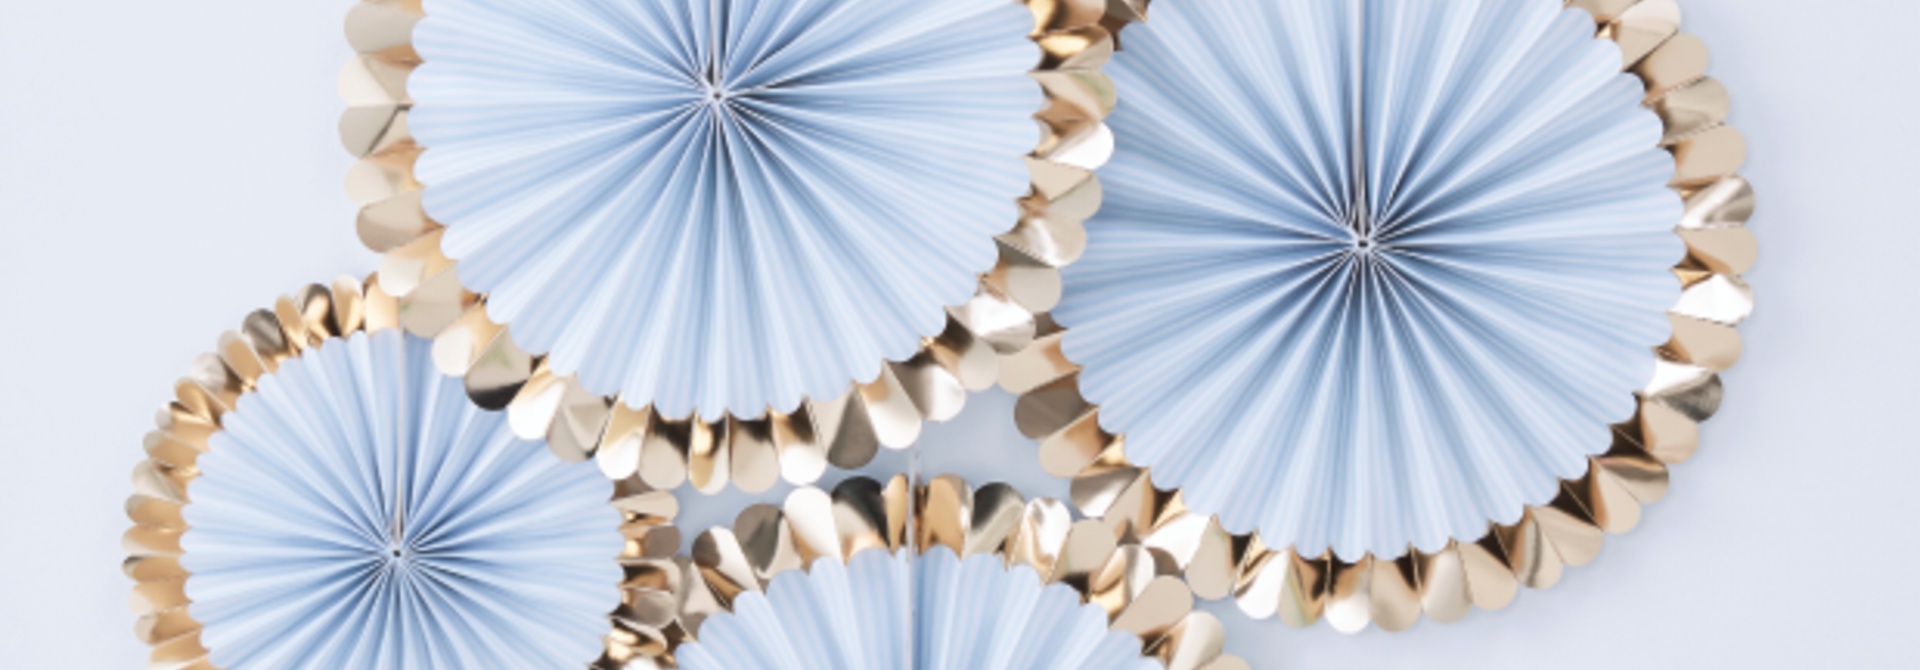 Paper fans lichtblauw goud (5 st) - Ginger Ray